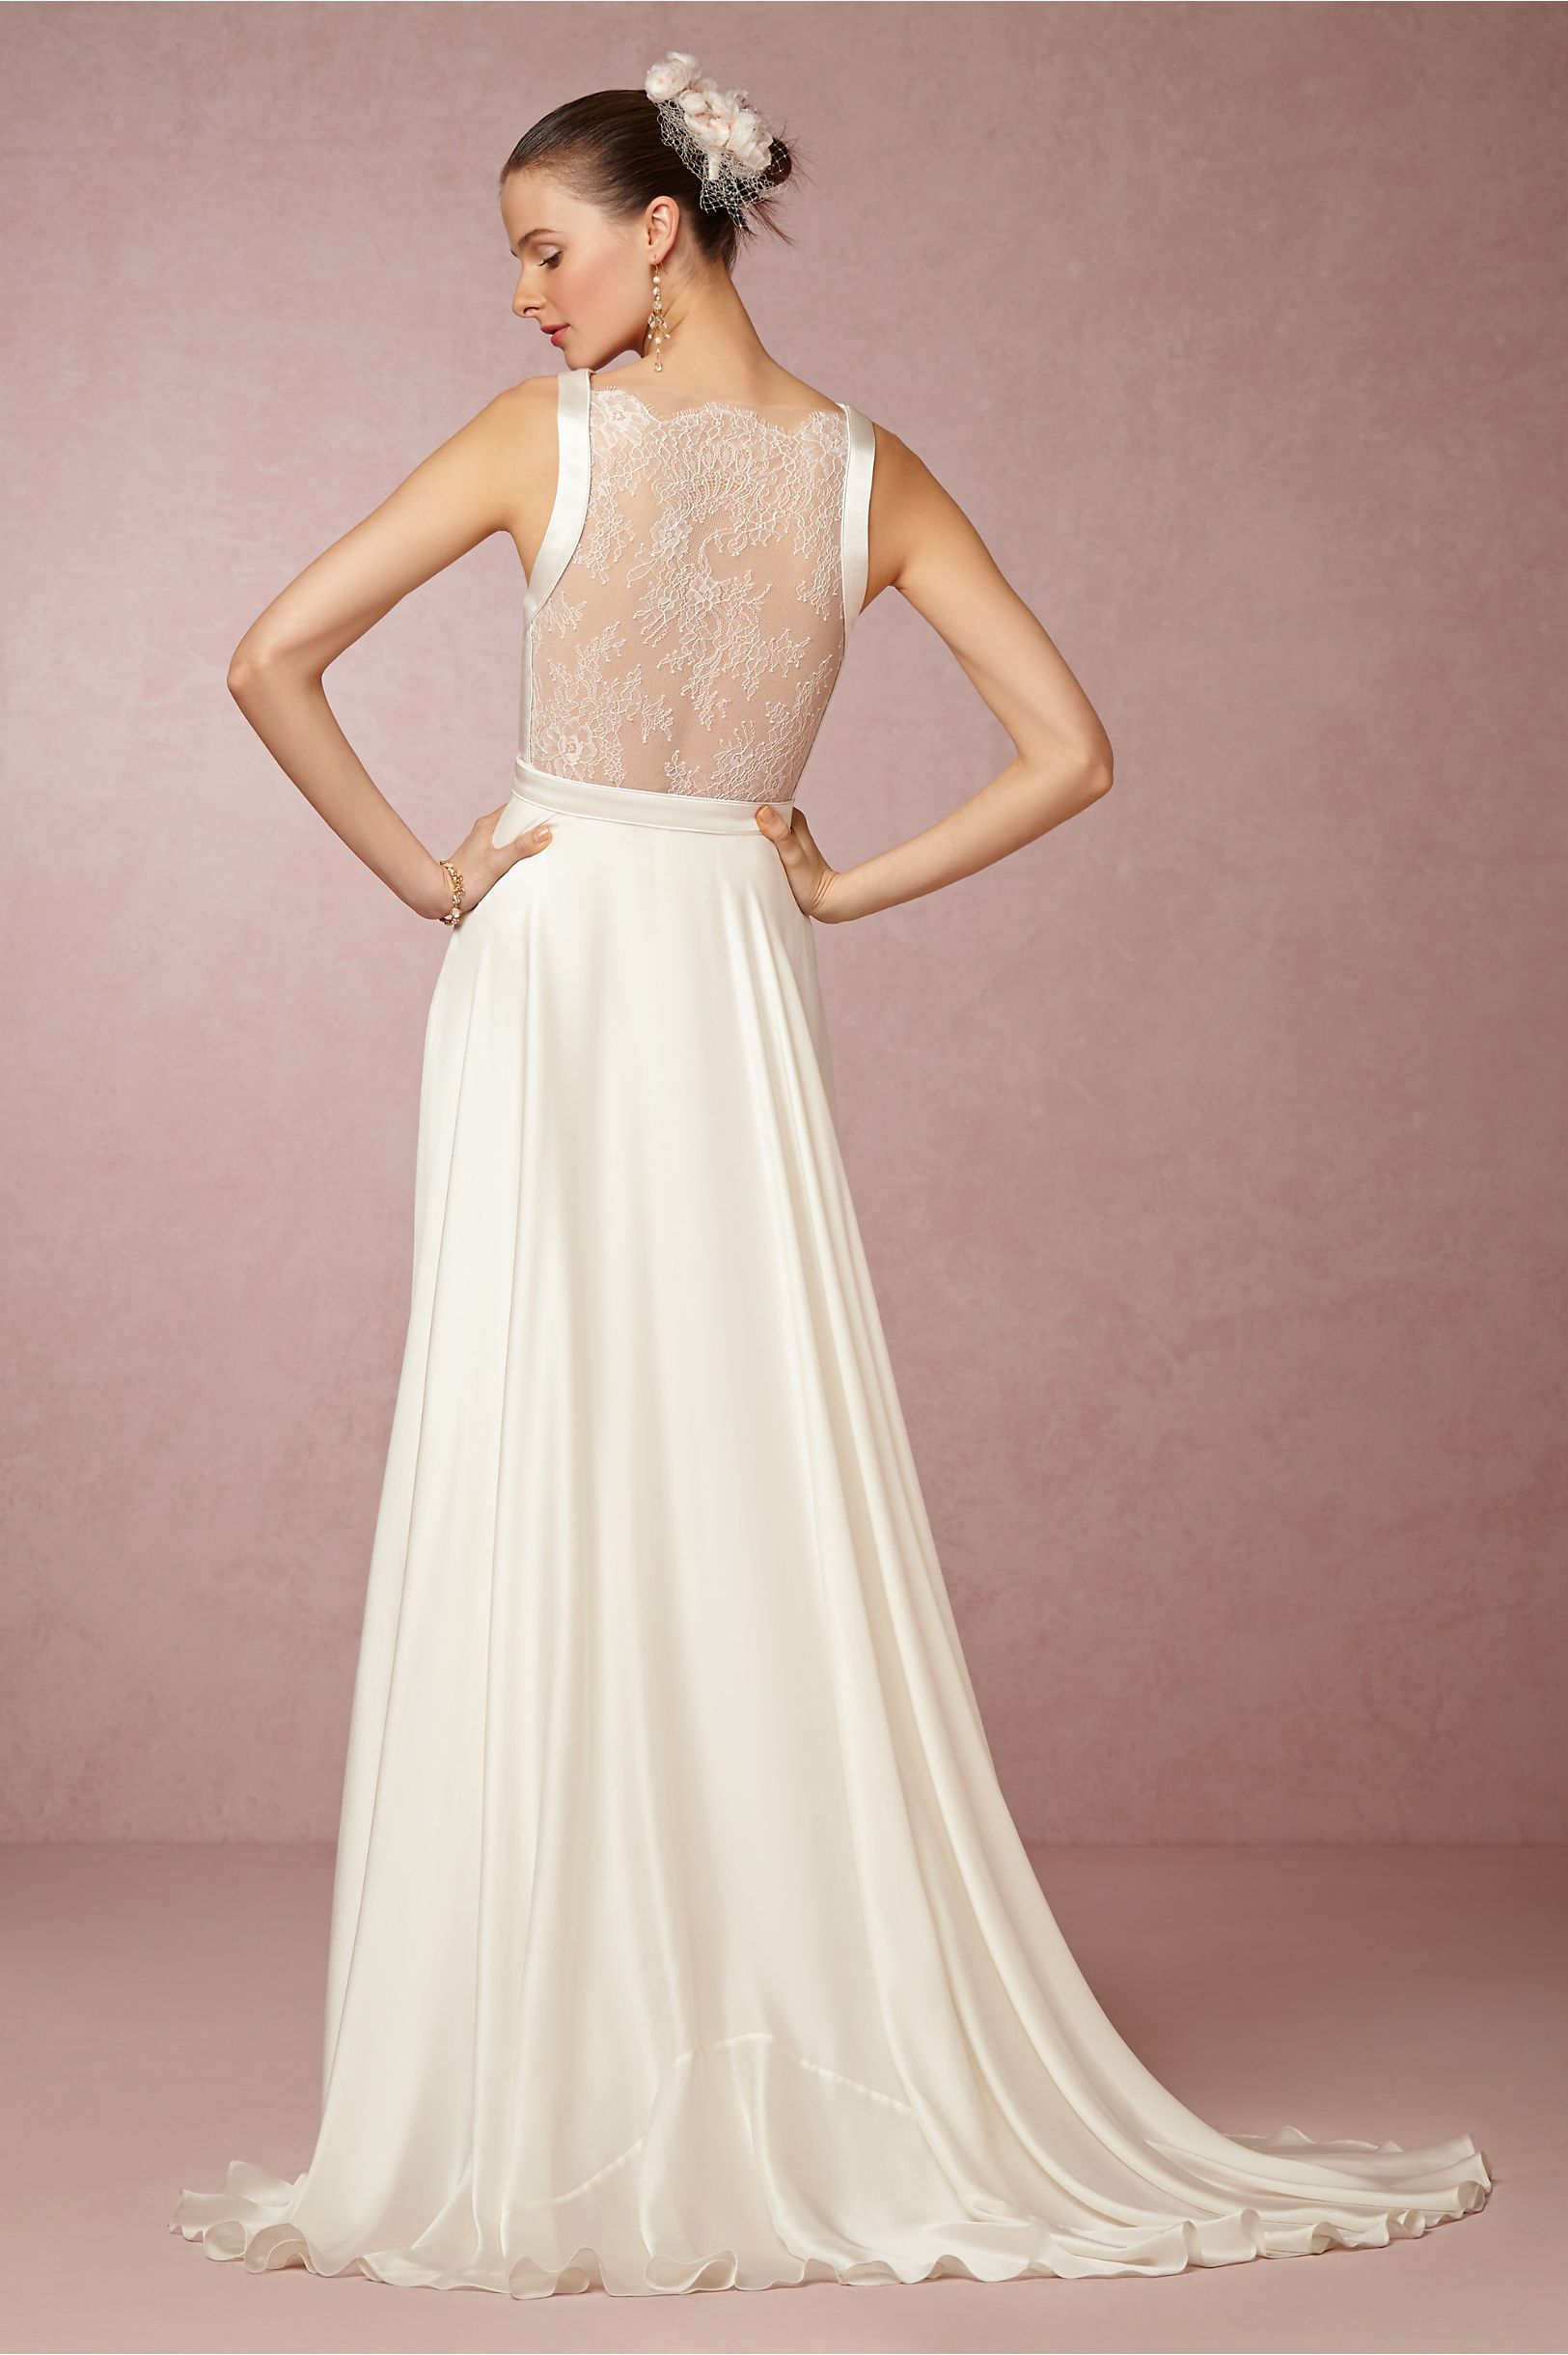 Angel Gown by Catherine Deane for @BHLDN | Black Tie Wedding ...